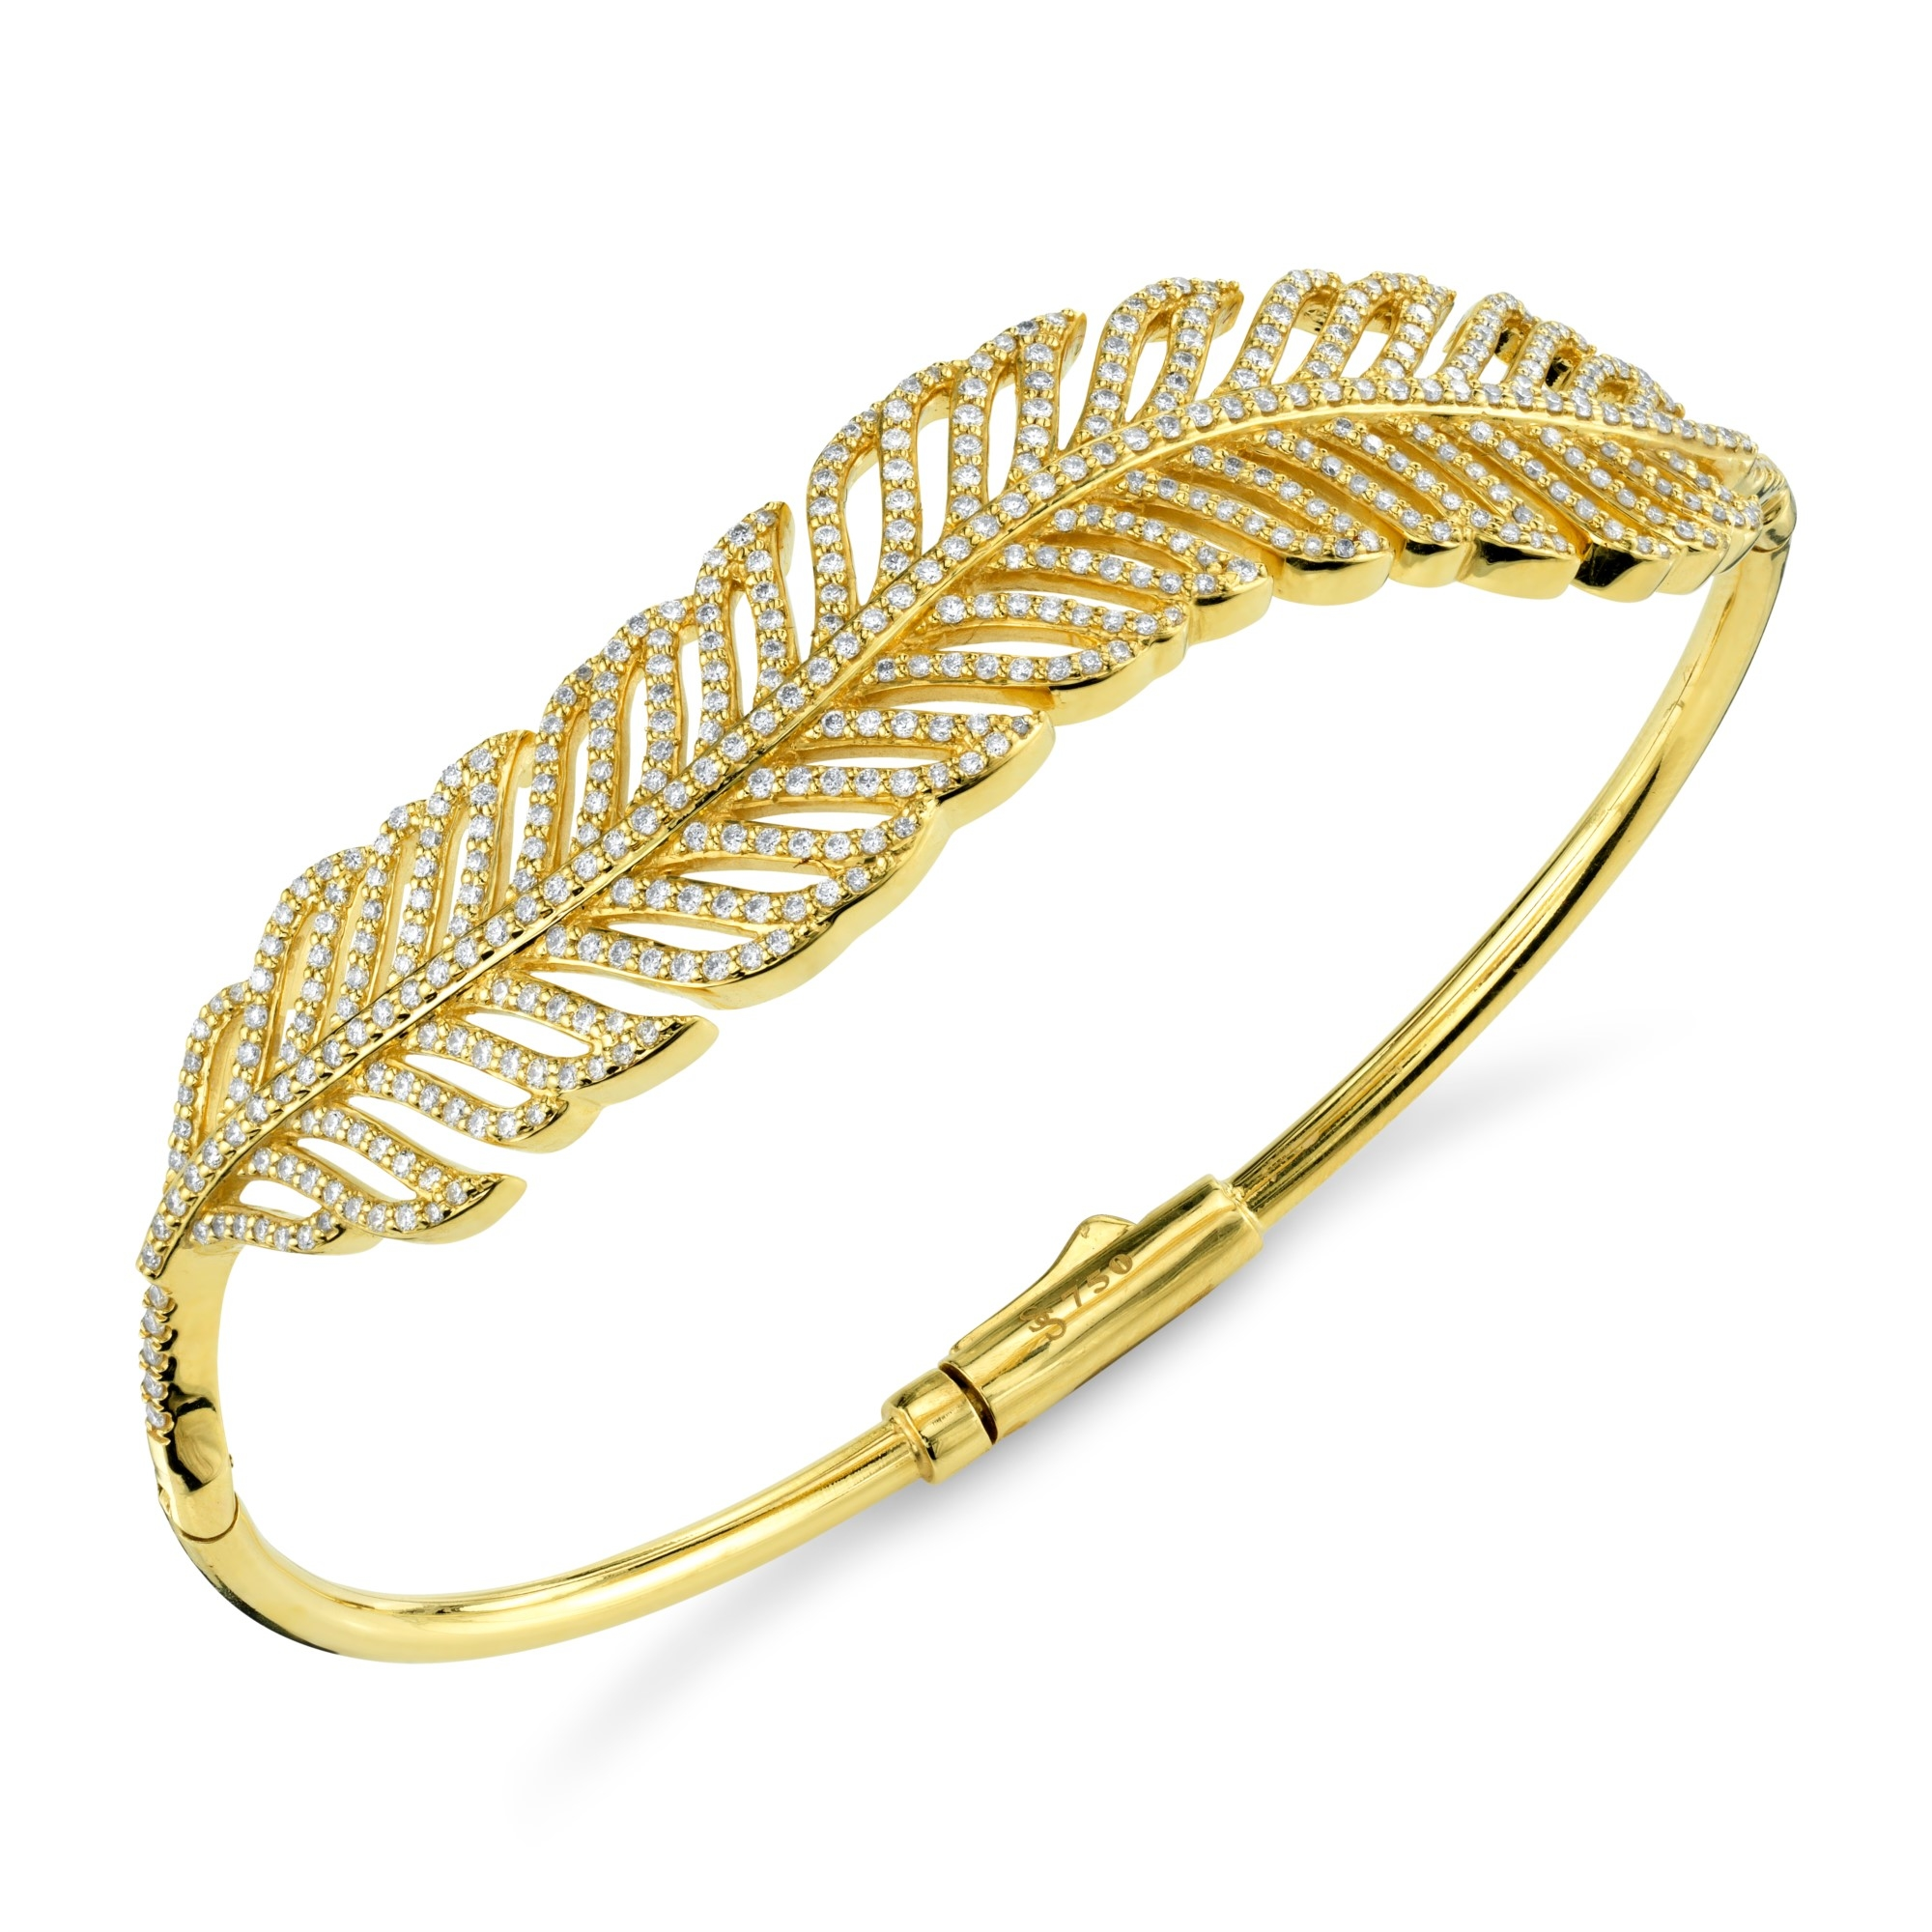 Sloane Street 18K Yellow Gold 1.73cts  Diamonds Gold Bangle with Stones B006T-WD-Y